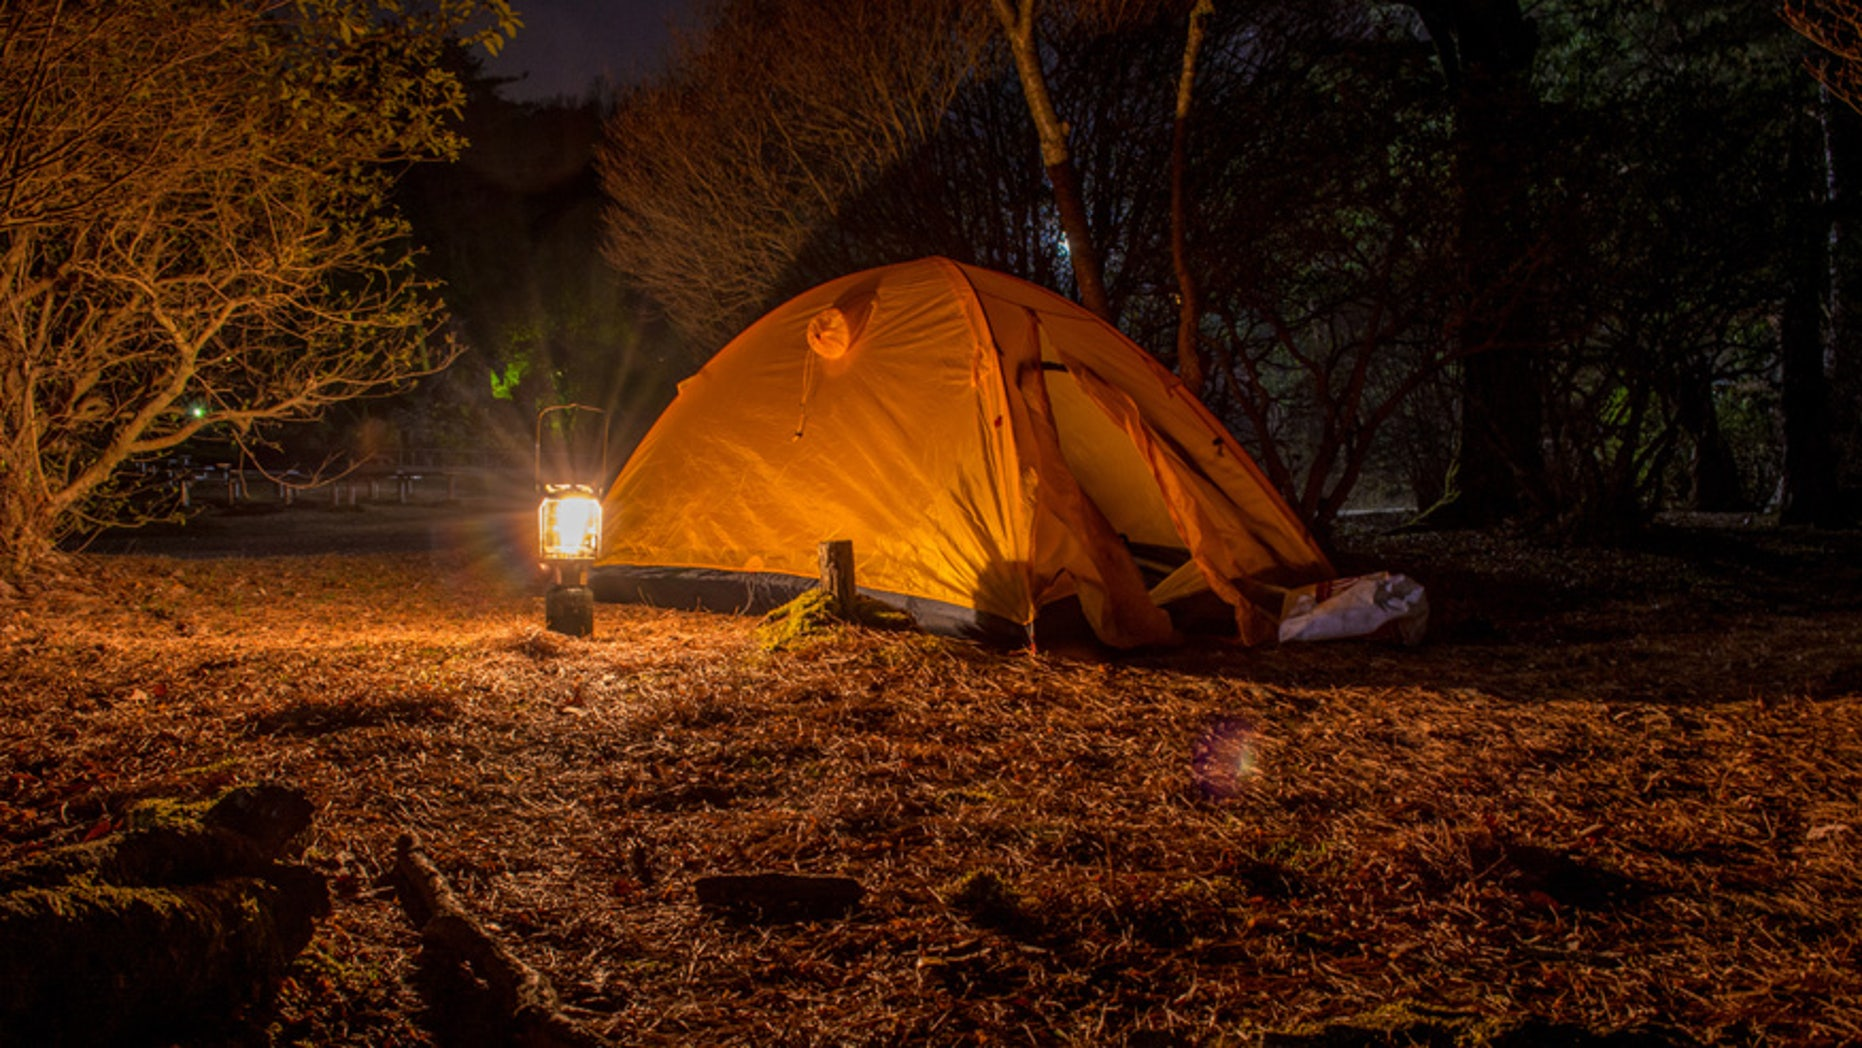 A couple's camping retreat quickly turned into a nightmare.